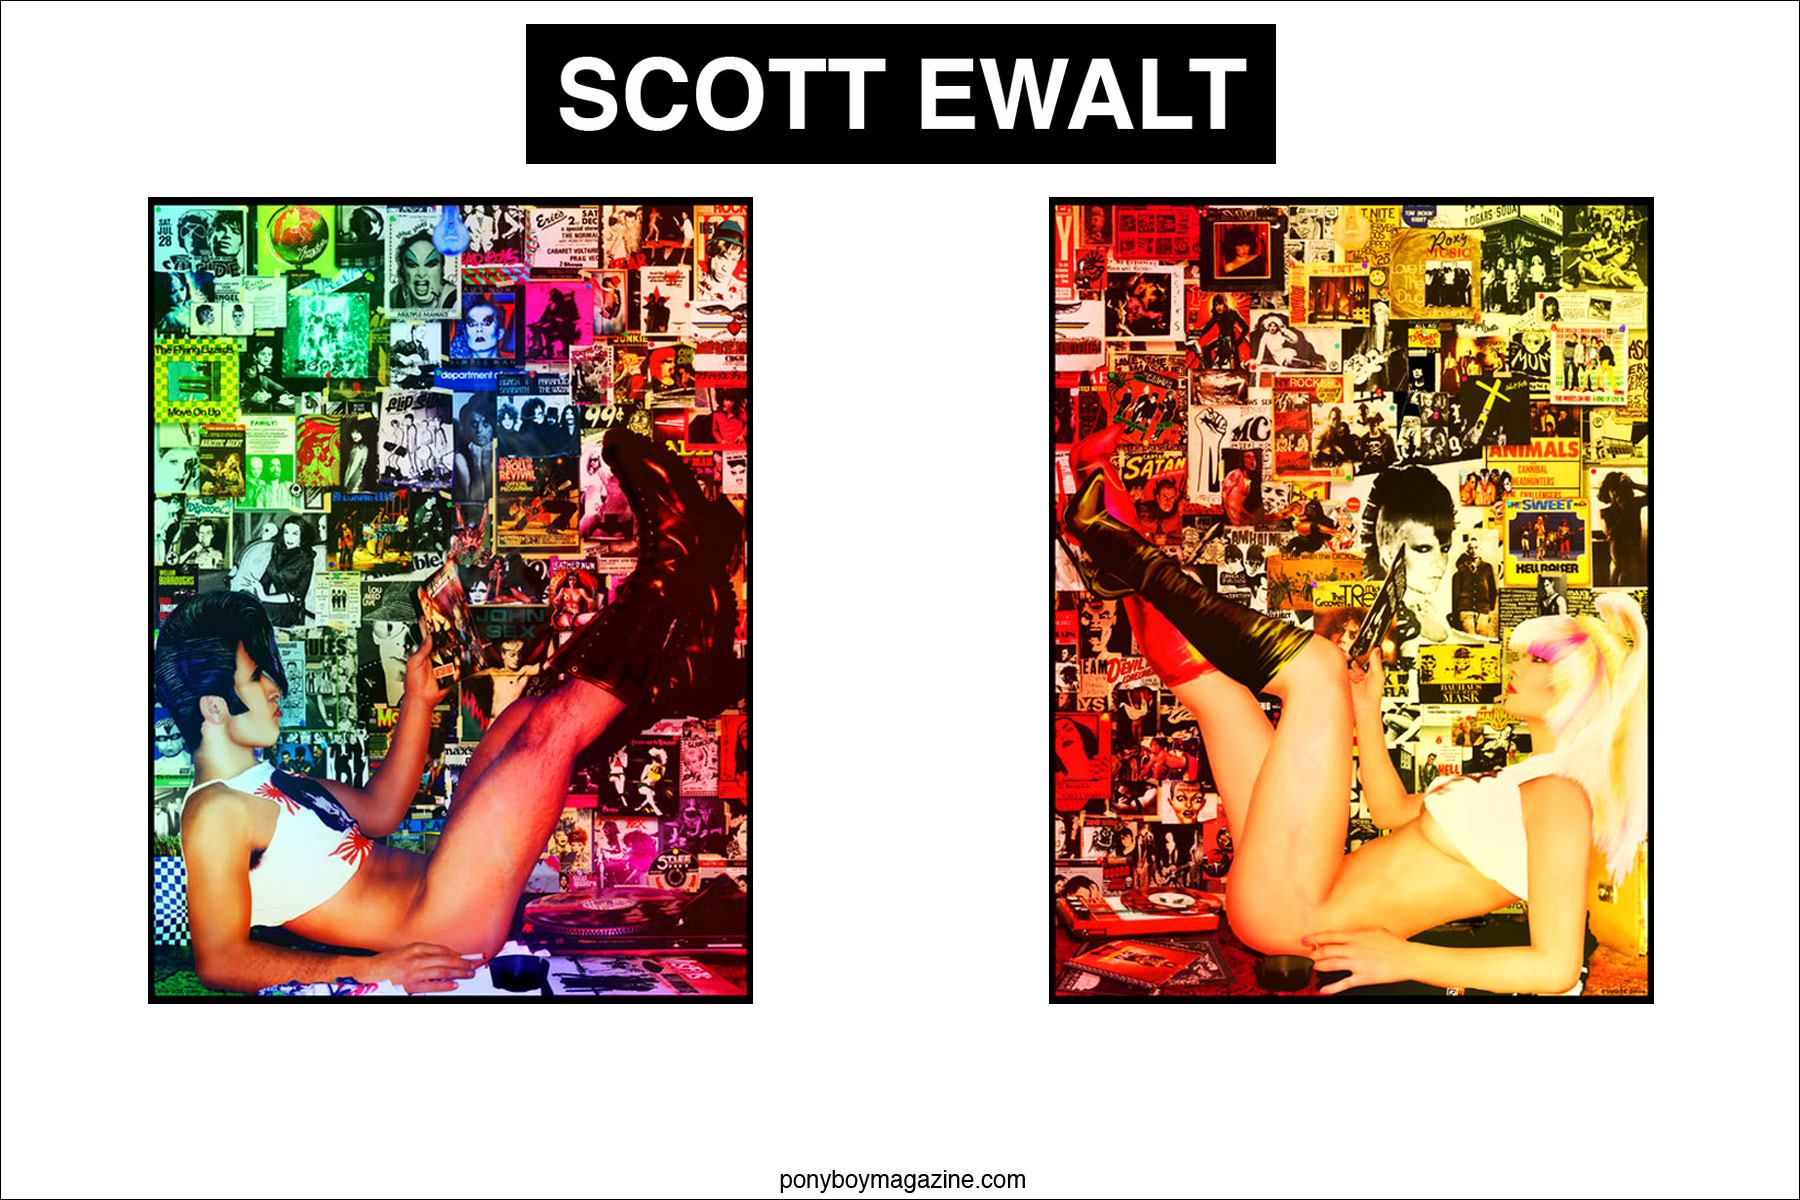 Opening spread for Scott Ewalt, Ponyboy Magazine.